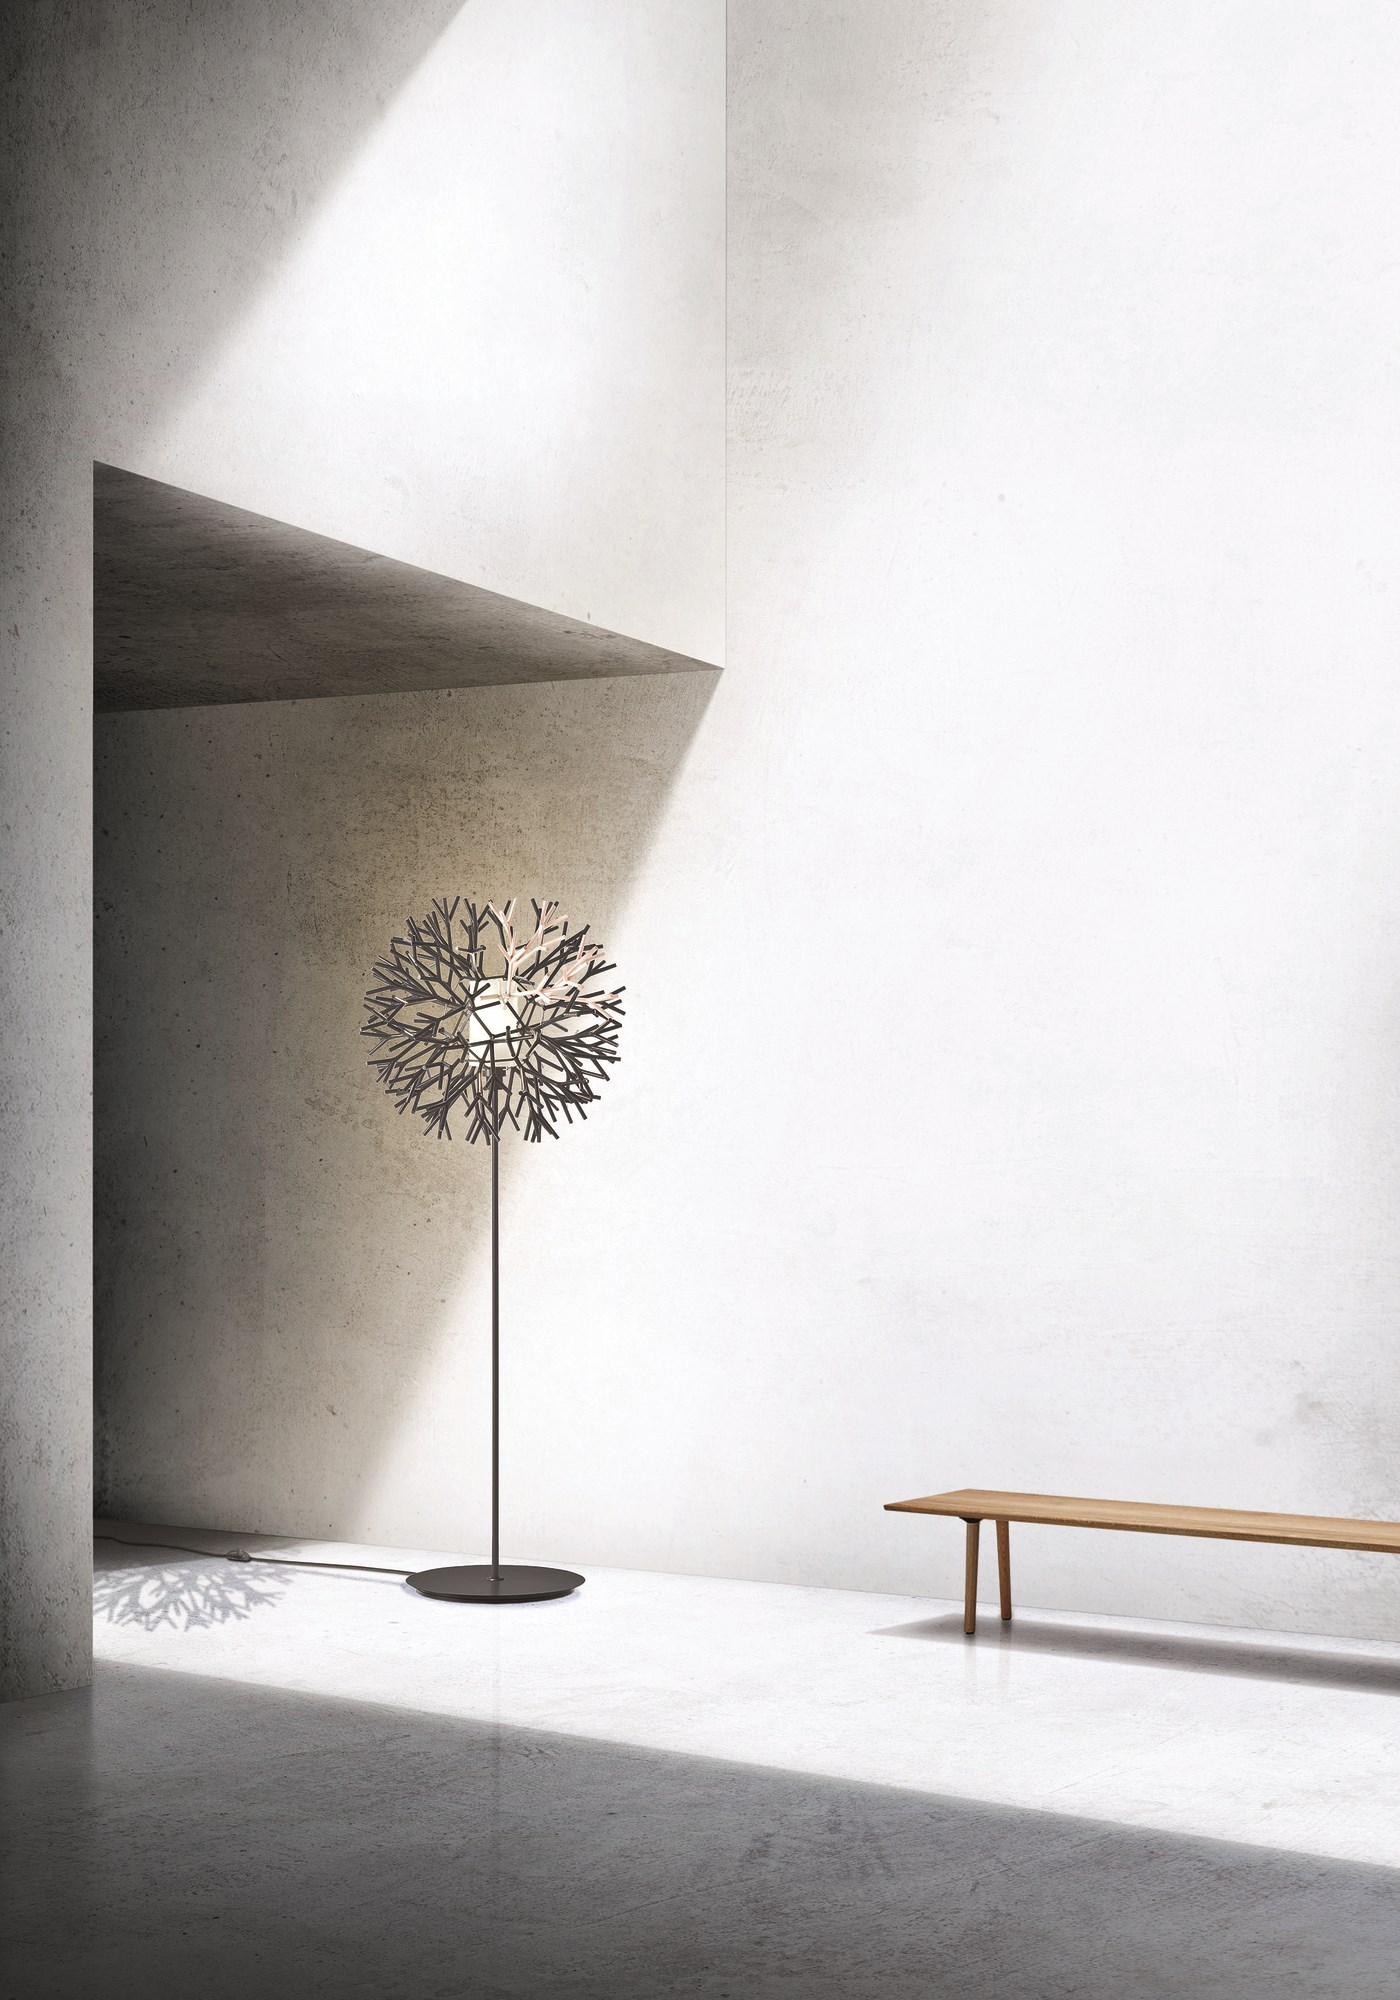 Floor lamp with round top reproducing the fractal pattern of branches.